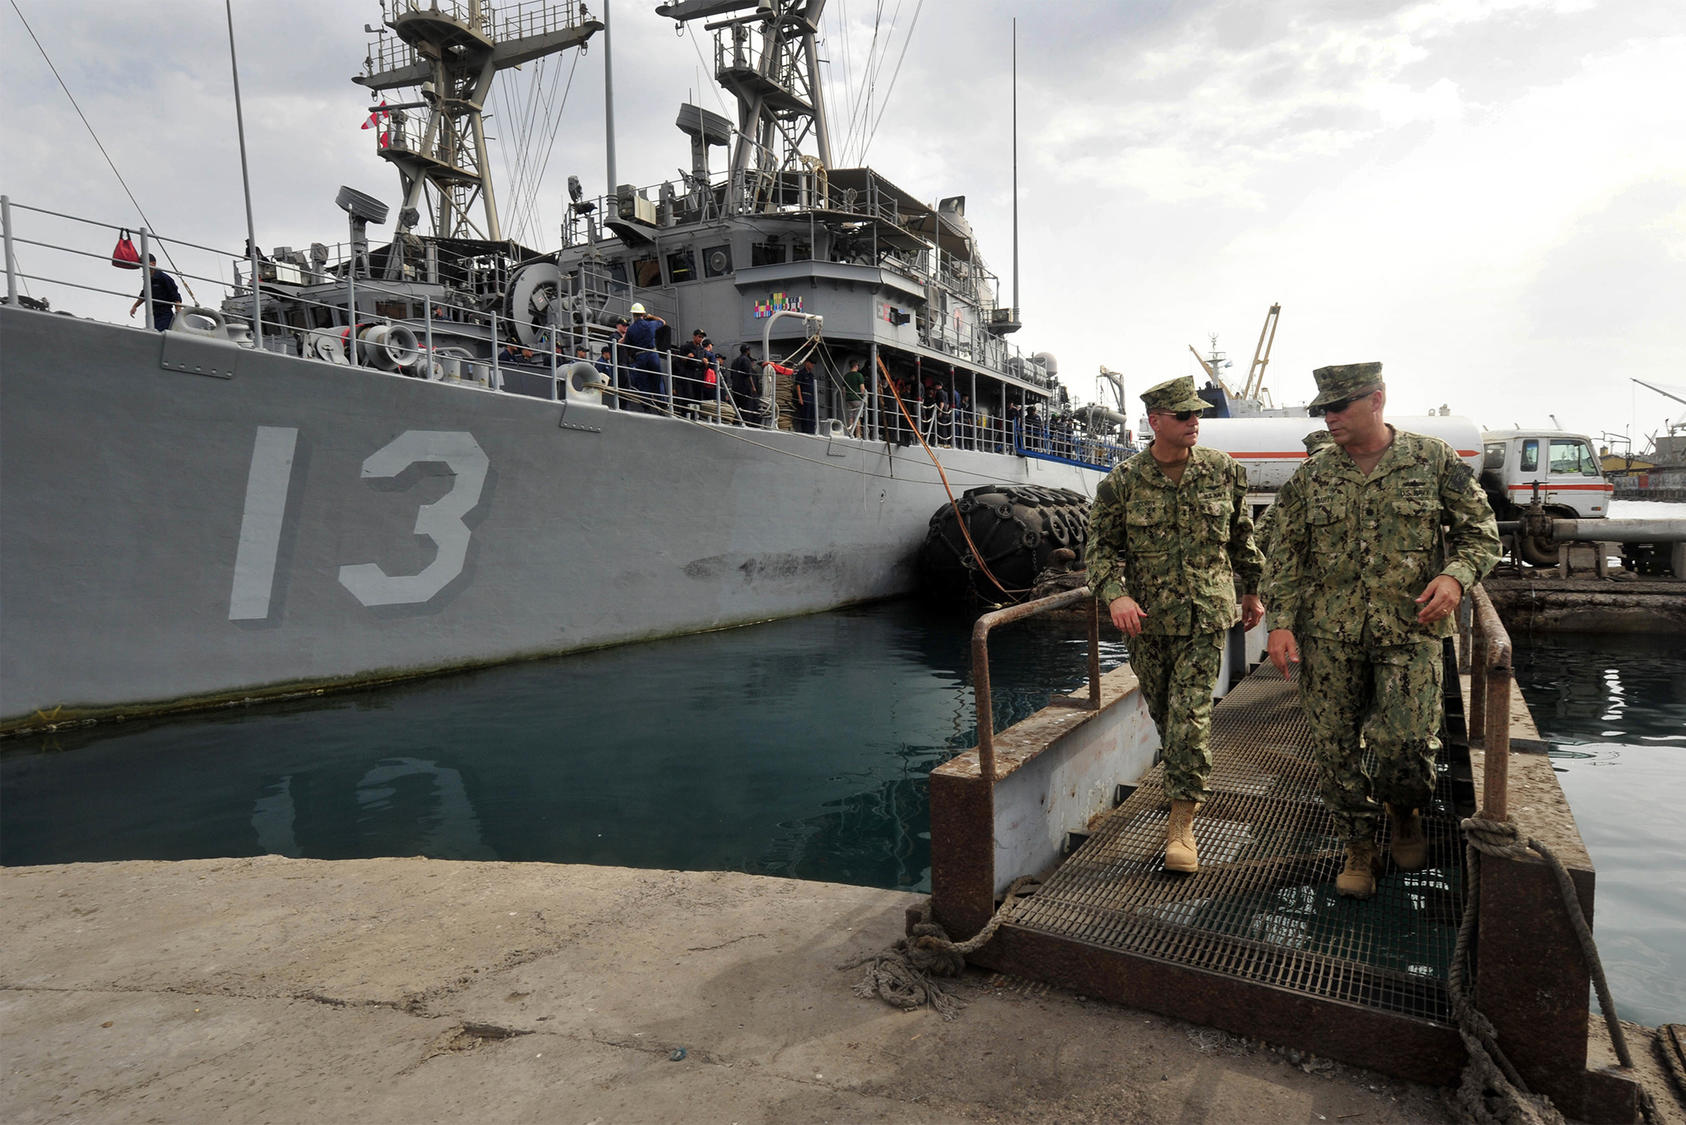 Rear Adm. John Scorby, then commander of Navy Region Europe, Africa, Southwest Asia, left, speaks with Cmdr. Jeffrey Marty, right, during a brief of port operations in the port of Djibouti on May 19, 2015. (Photo: U.S. Navy)